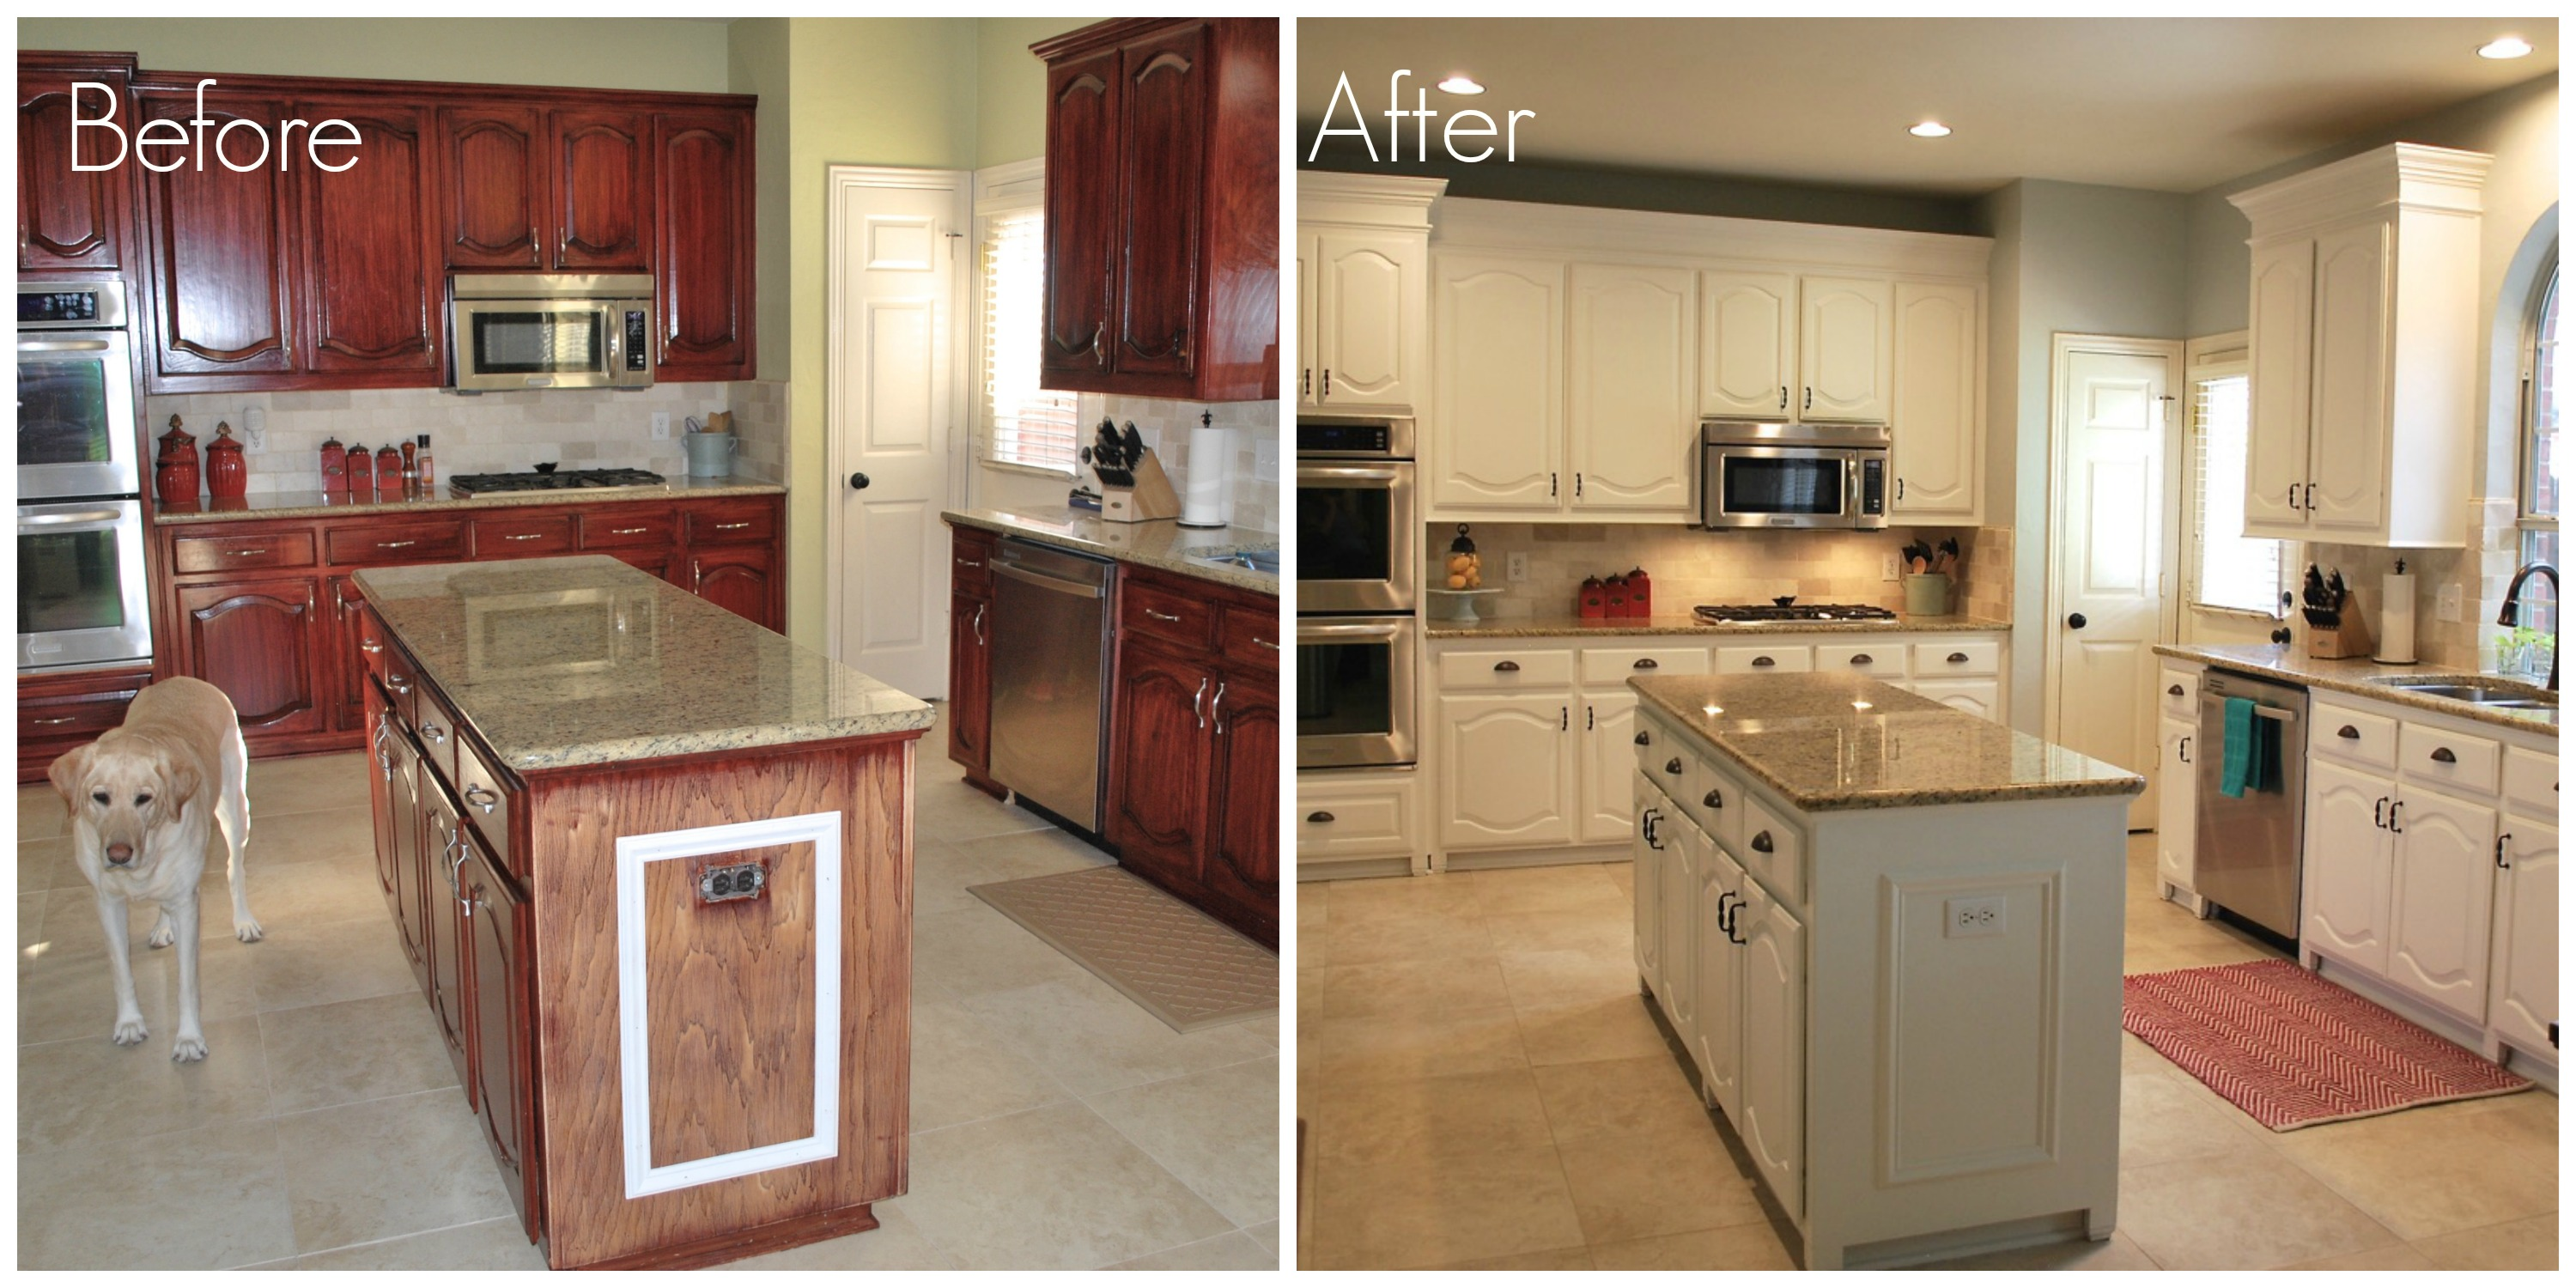 Our kitchen transformation from dark to white beautiful for Painting wood cabinets white before and after